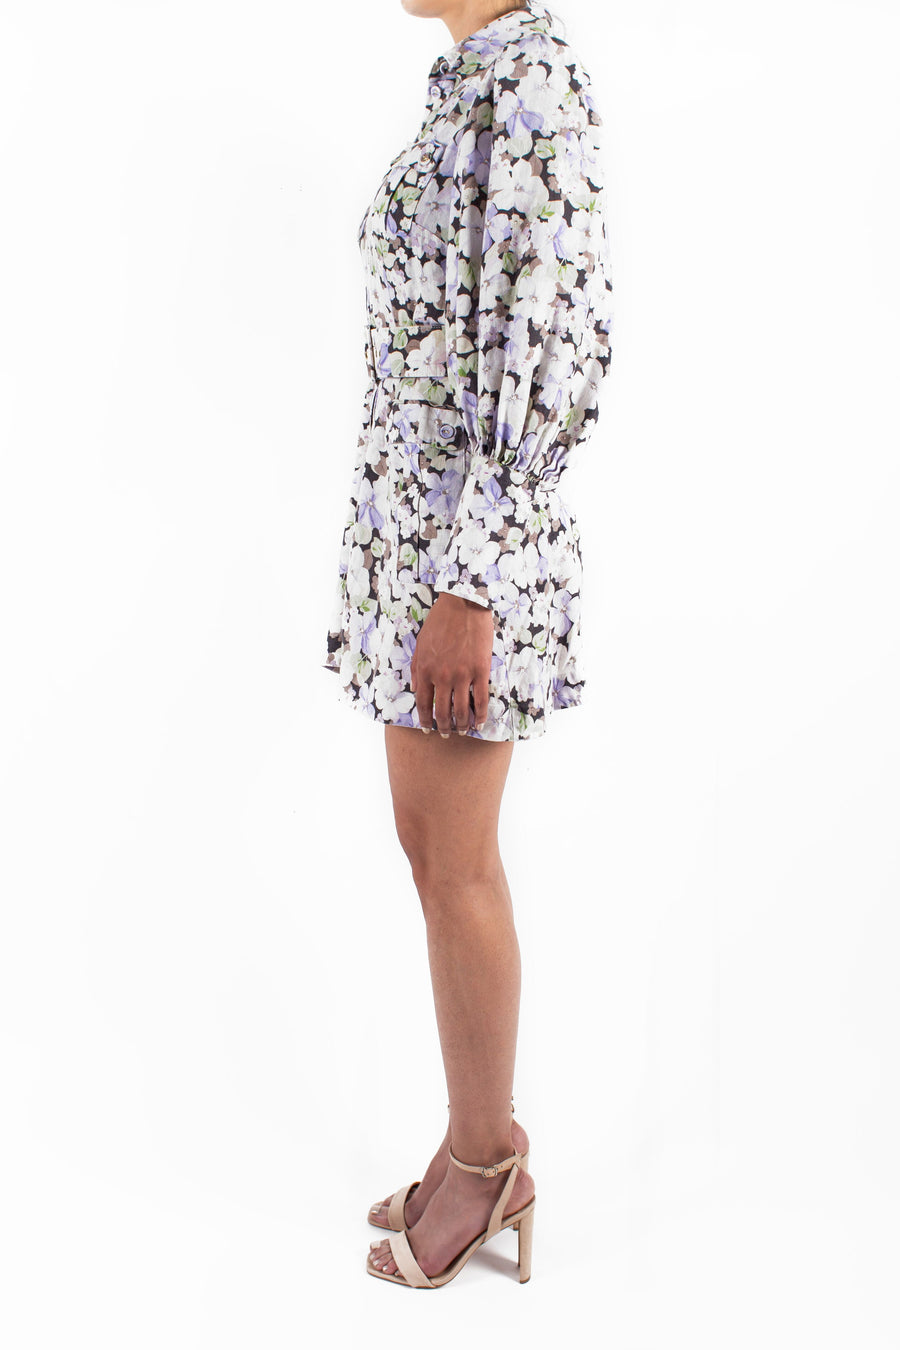 Ninety-Six Shirt Short Dress Front